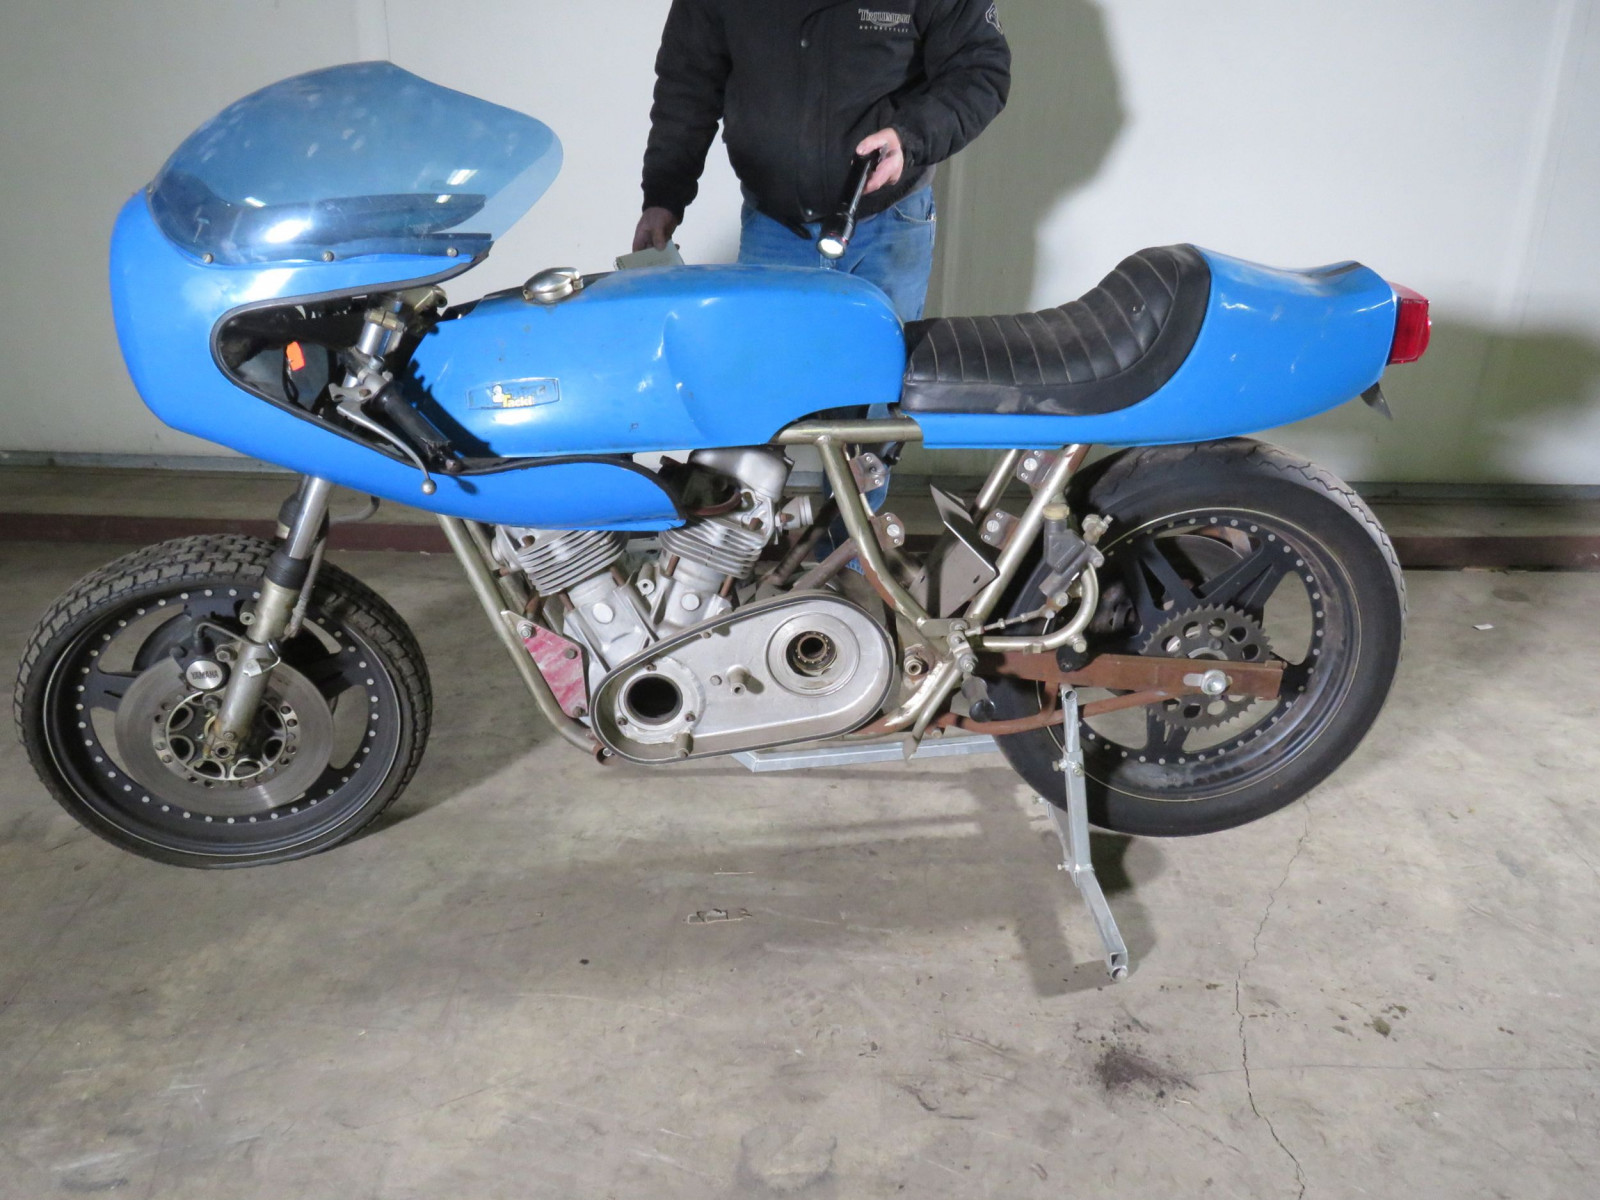 Homemade Mystery Motorcycle - Image 2